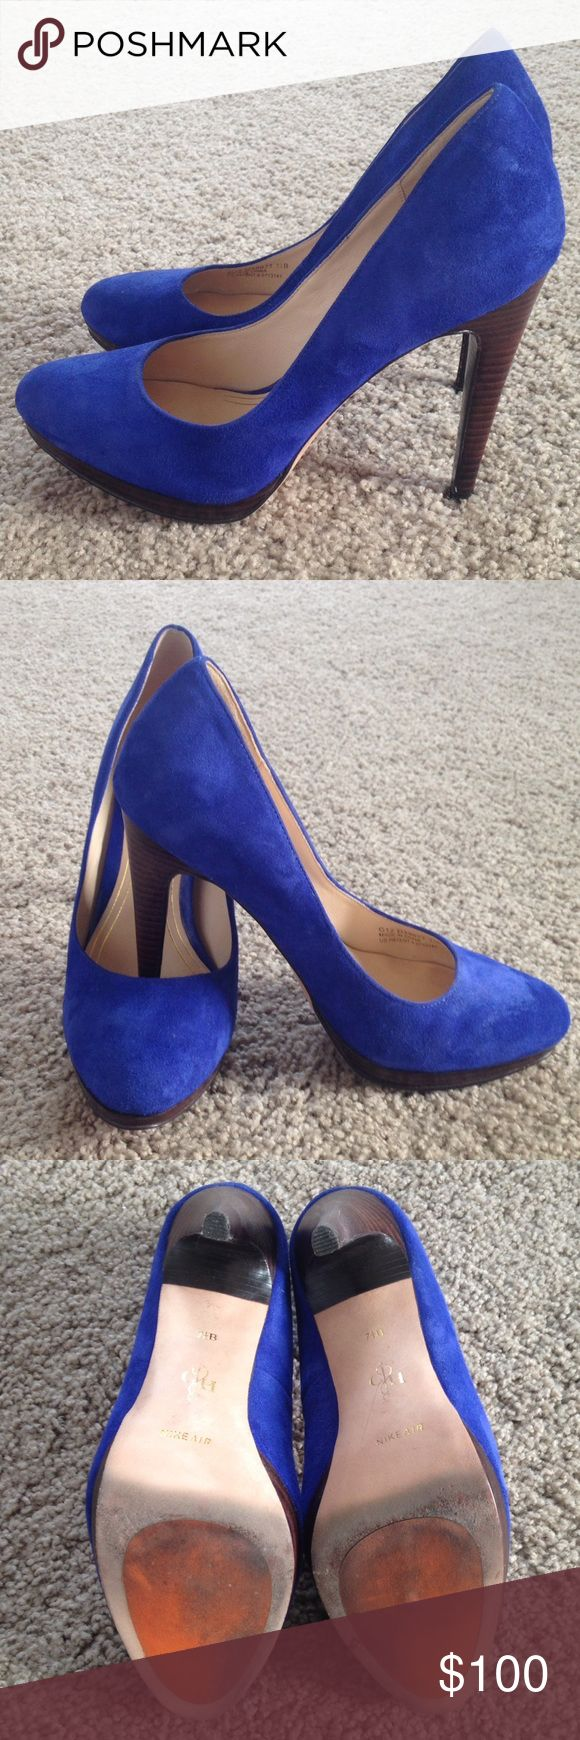 Cole Haan Blue Suede Pumps These are beautiful!!! Cole Haan blue suede pumps with NikeAir technology!!! Only worn ONCE!! You can see signs of this on the bottom, otherwise in like New condition!! Cole Haan Shoes Heels